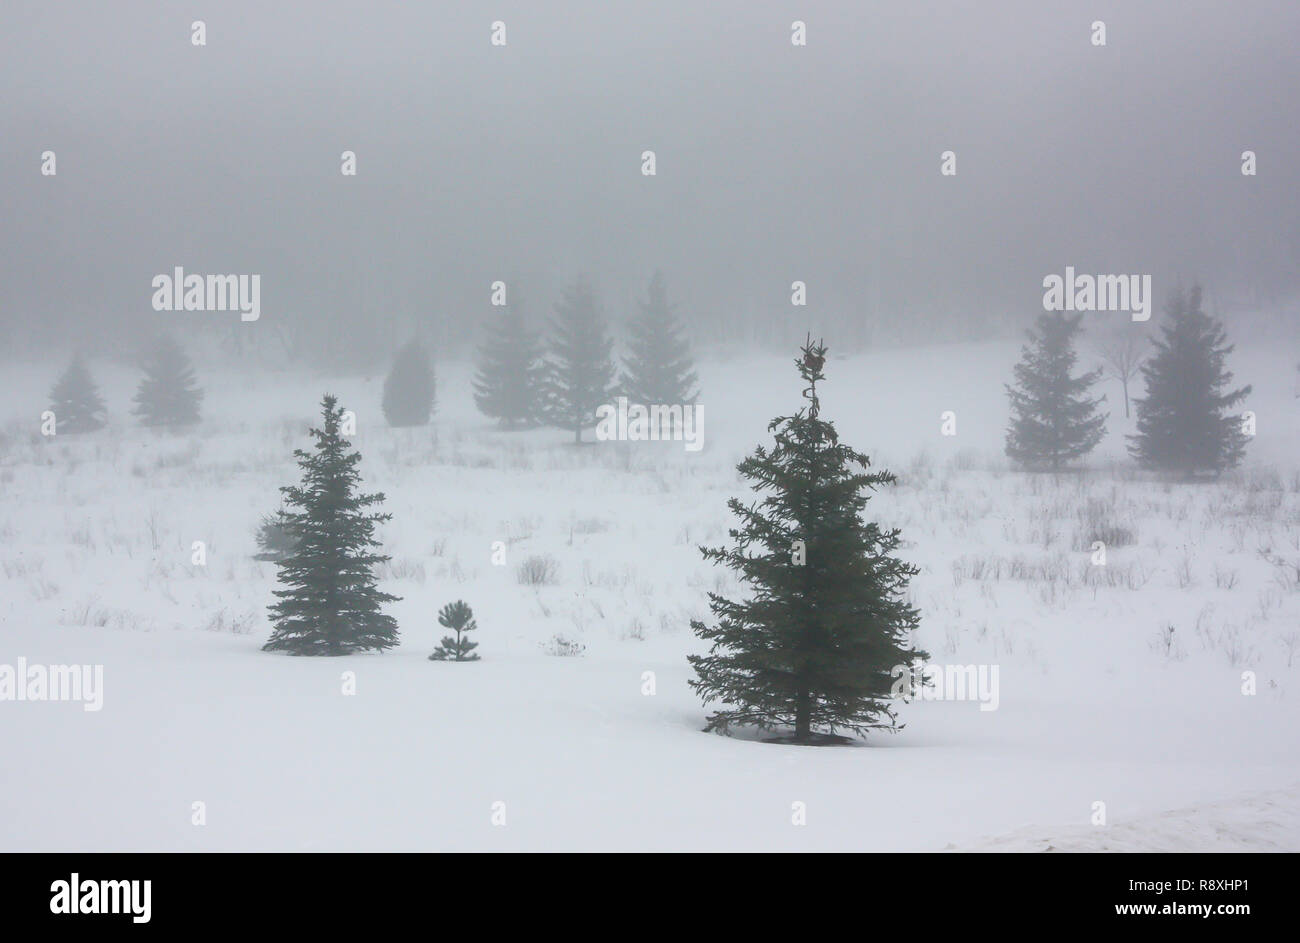 Dense fog hangs over a meadow with snow cover and evergreen trees. - Stock Image